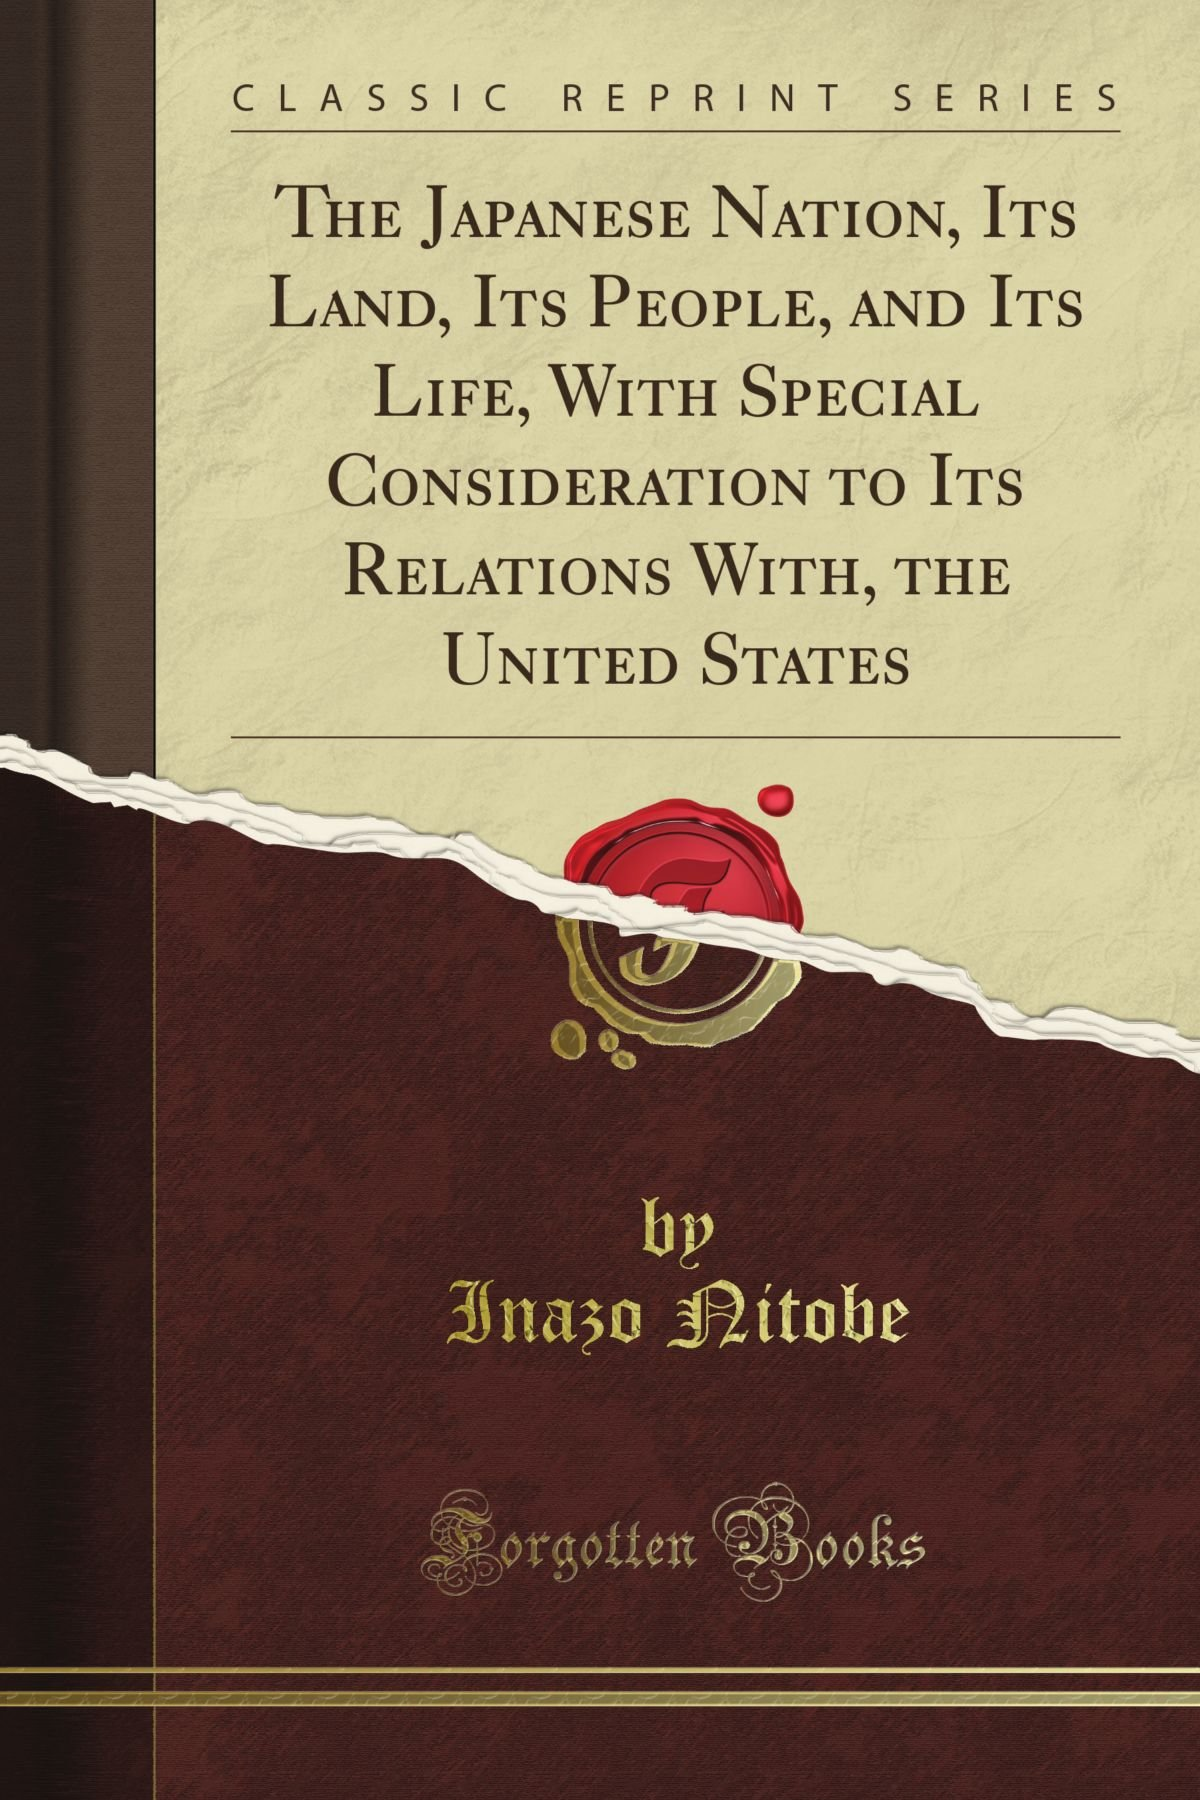 The Japanese Nation, Its Land, Its People, and Its Life, With Special Consideration to Its Relations With, the United States (Classic Reprint) PDF